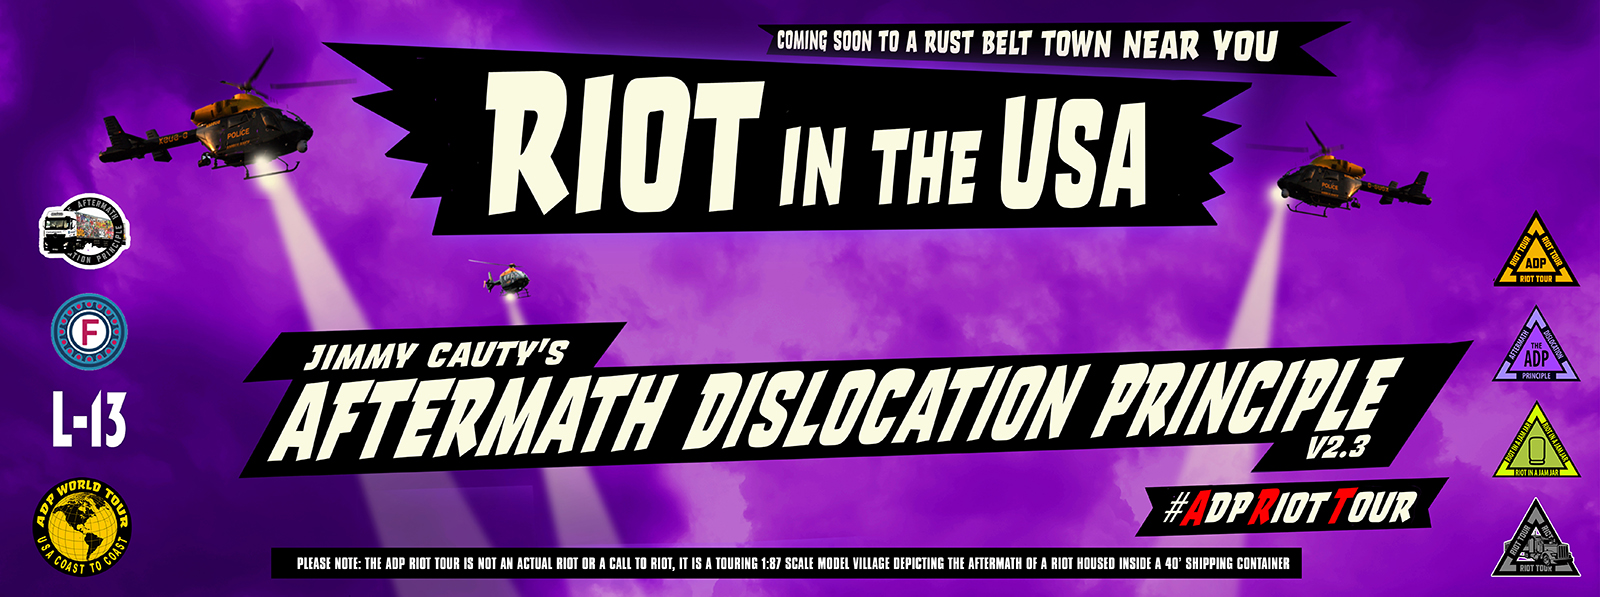 Jimmy Cauty World Riot Tour Riot In The USA banner